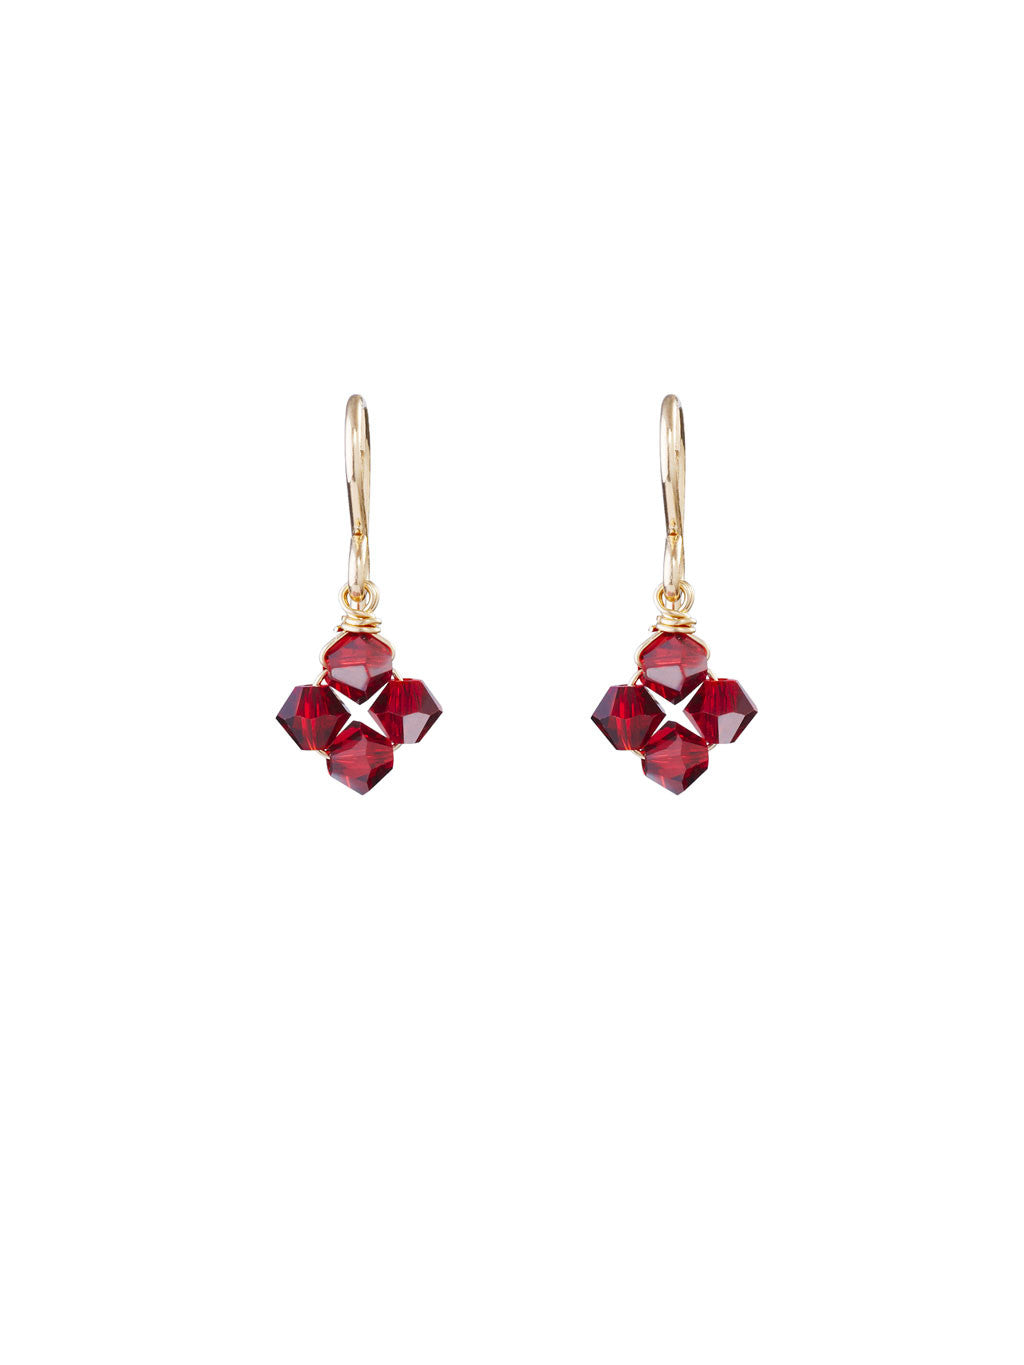 Crystal Diamond Clover Earrings - Scarlet